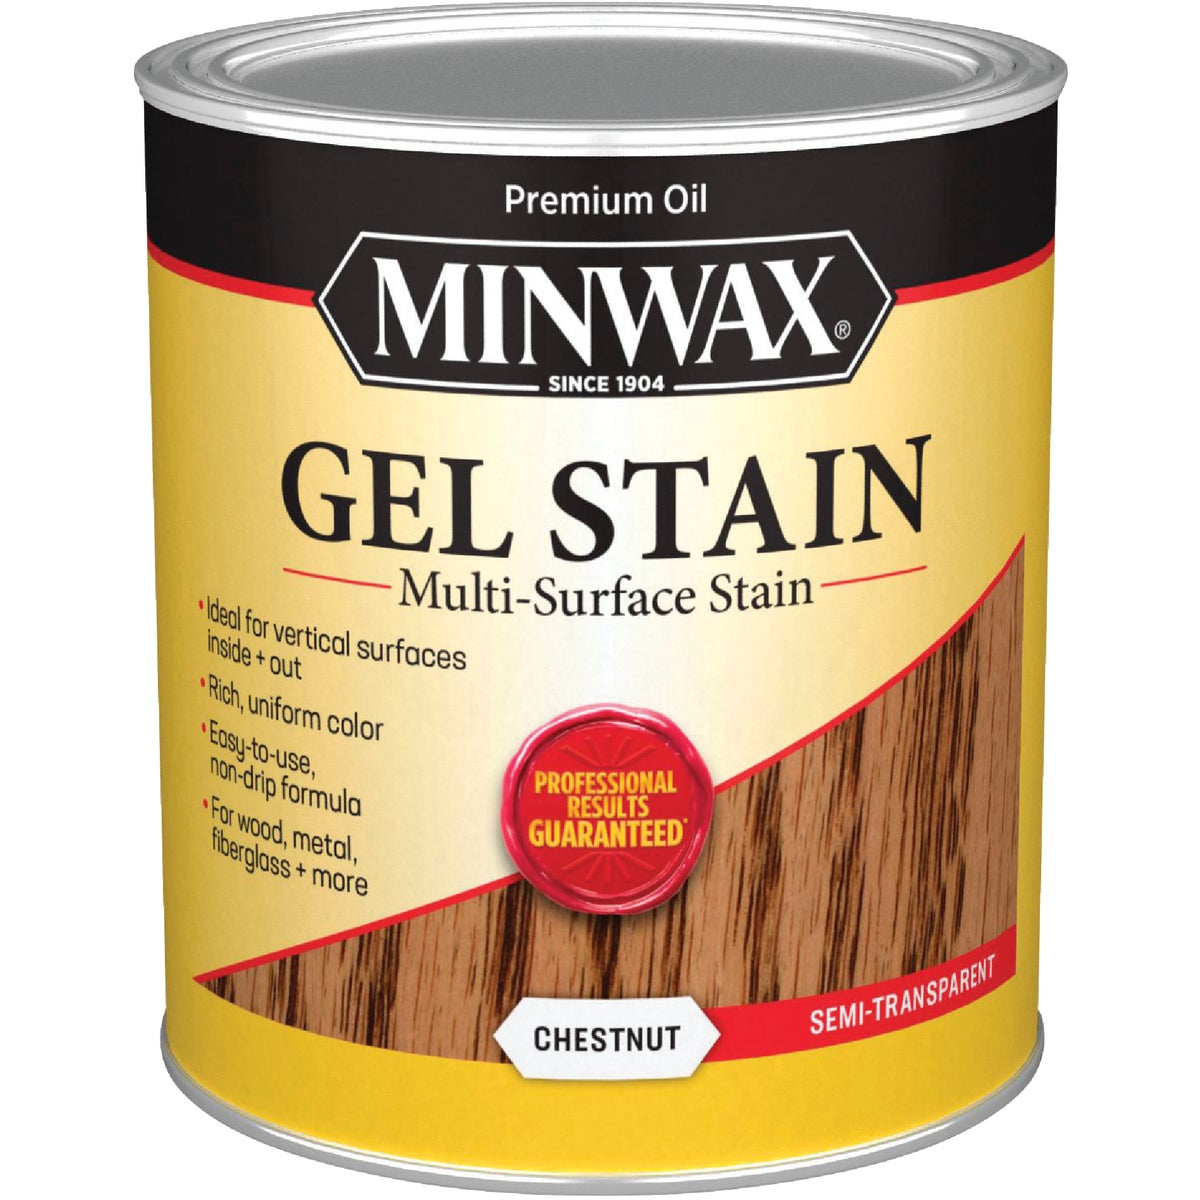 CHESTNUT GEL STAIN